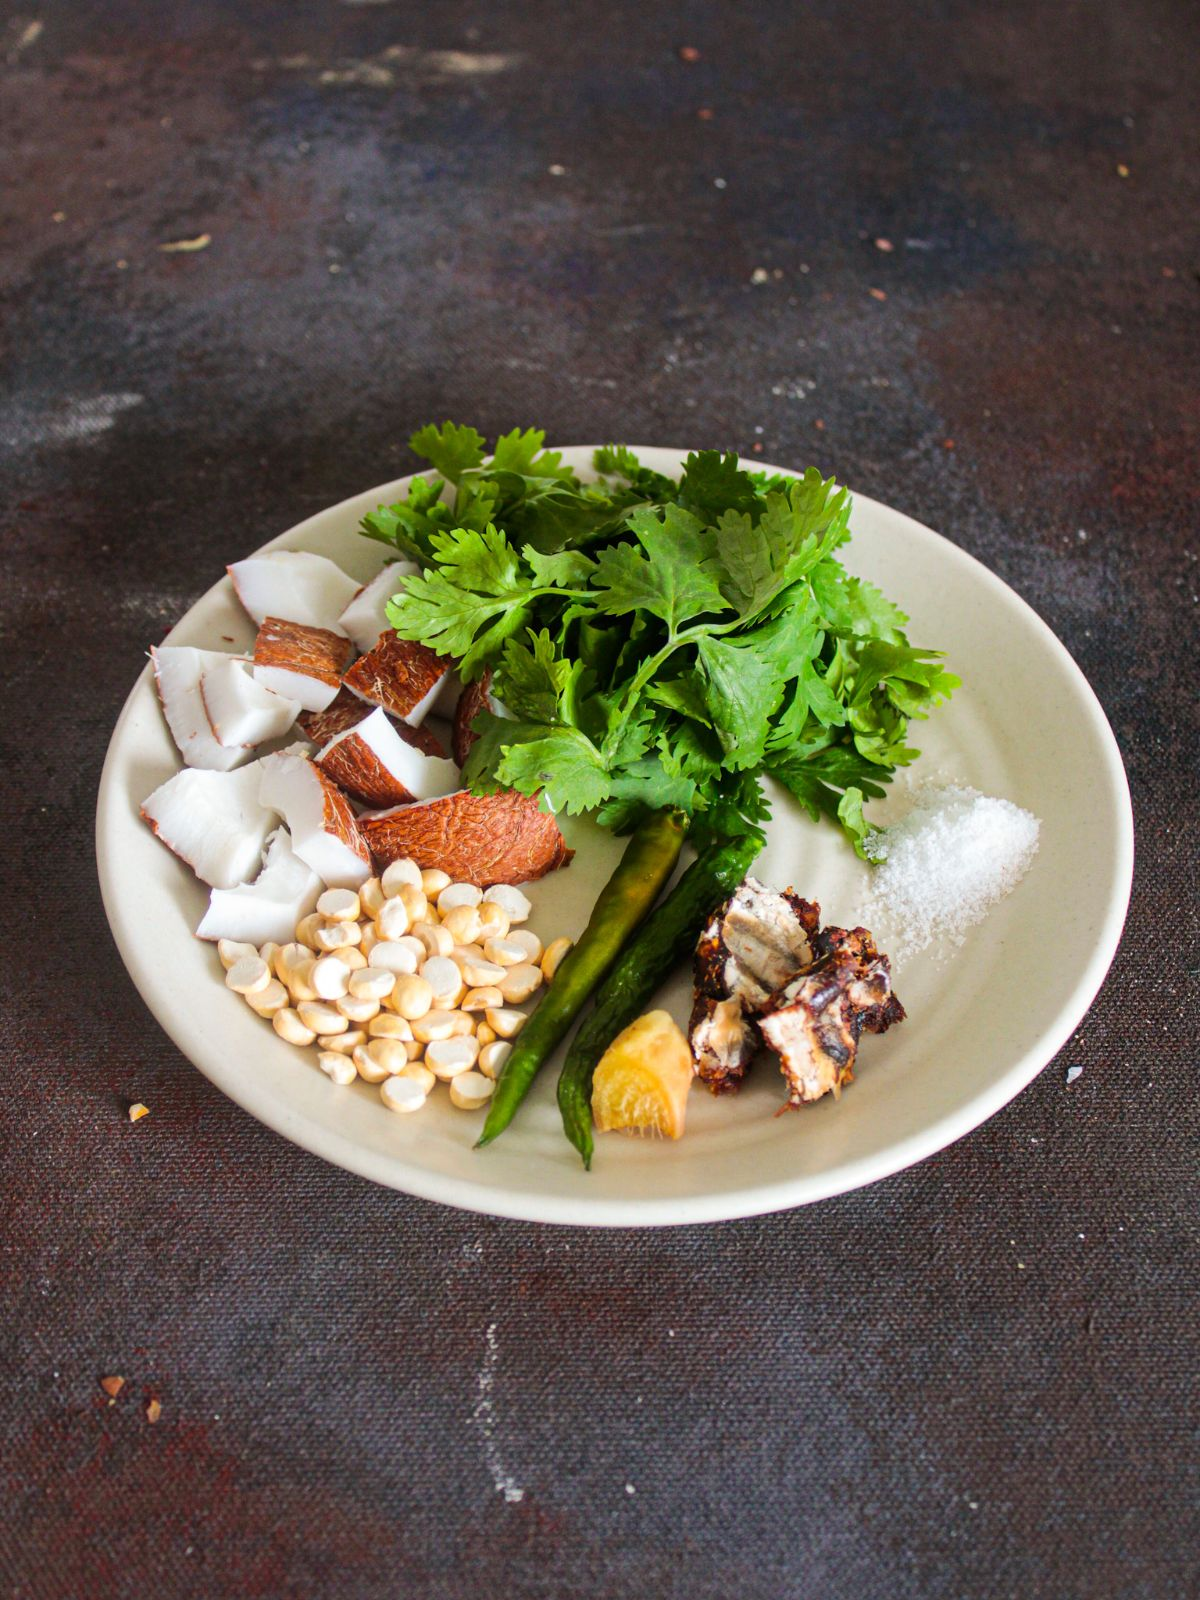 Ingredients for Coconut Coriander Chutney on white plate